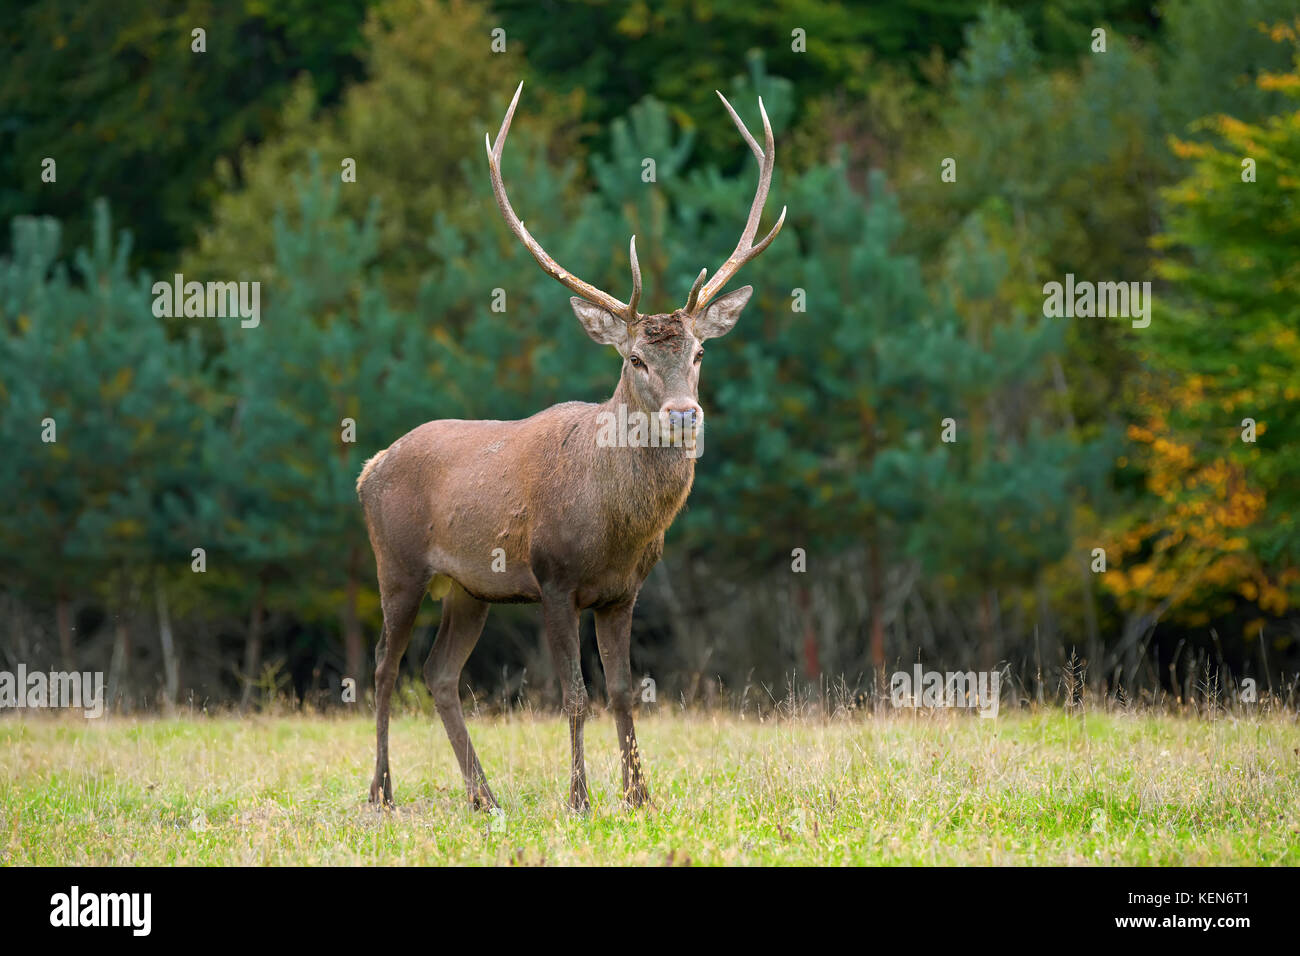 Portrait of majestic powerful adult red deer stag in the natural environment - Stock Image